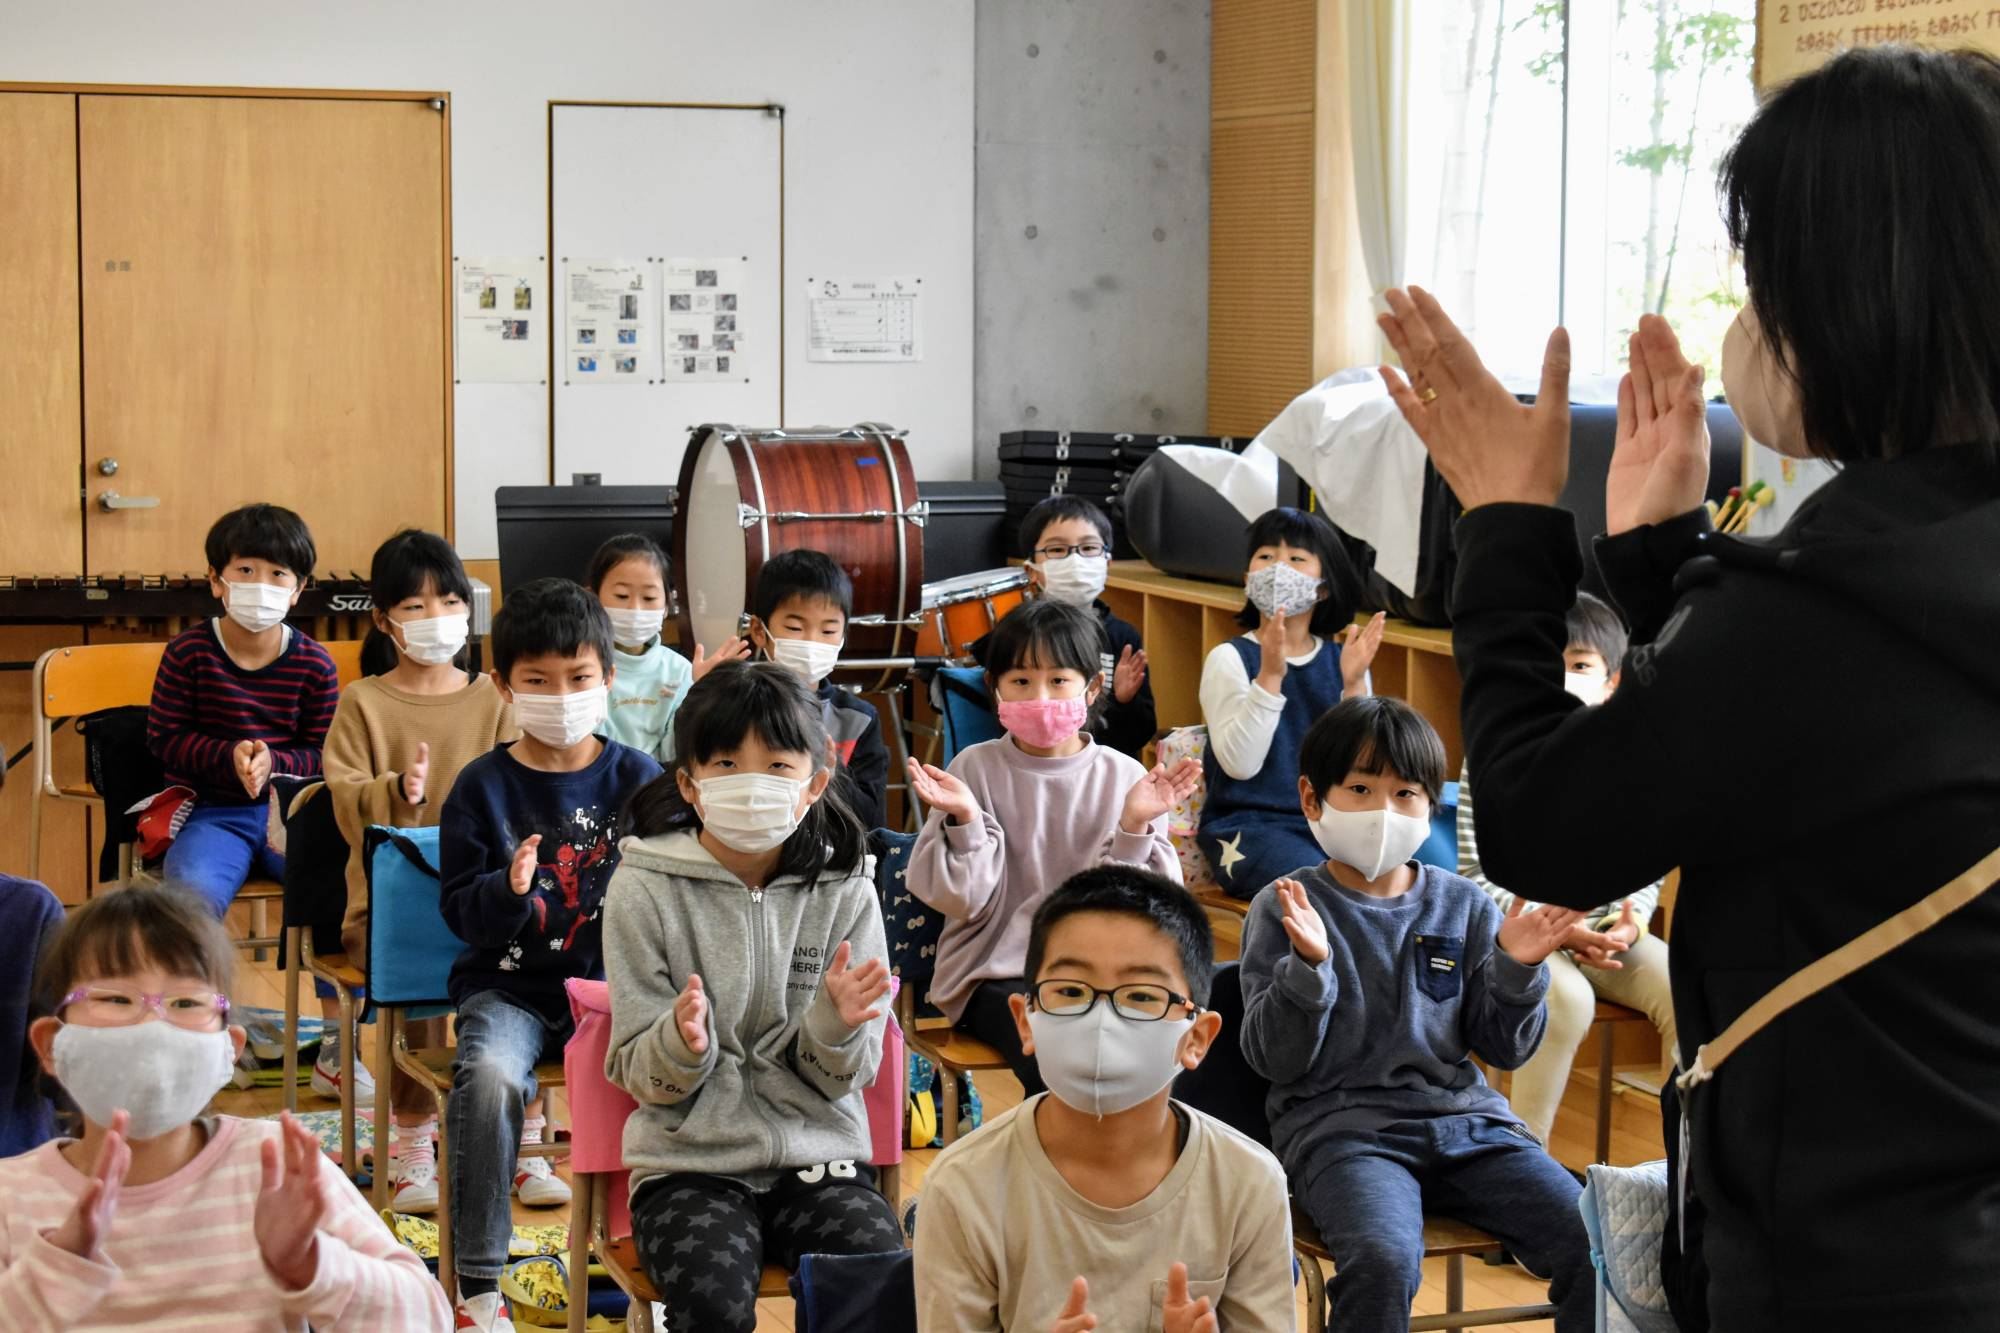 Students at Funabori Elementary School in Edogawa Ward, Tokyo, clap their hands during a music class in March. Singing is not allowed to prevent the spread of COVID-19. | TOMOHIRO OSAKI